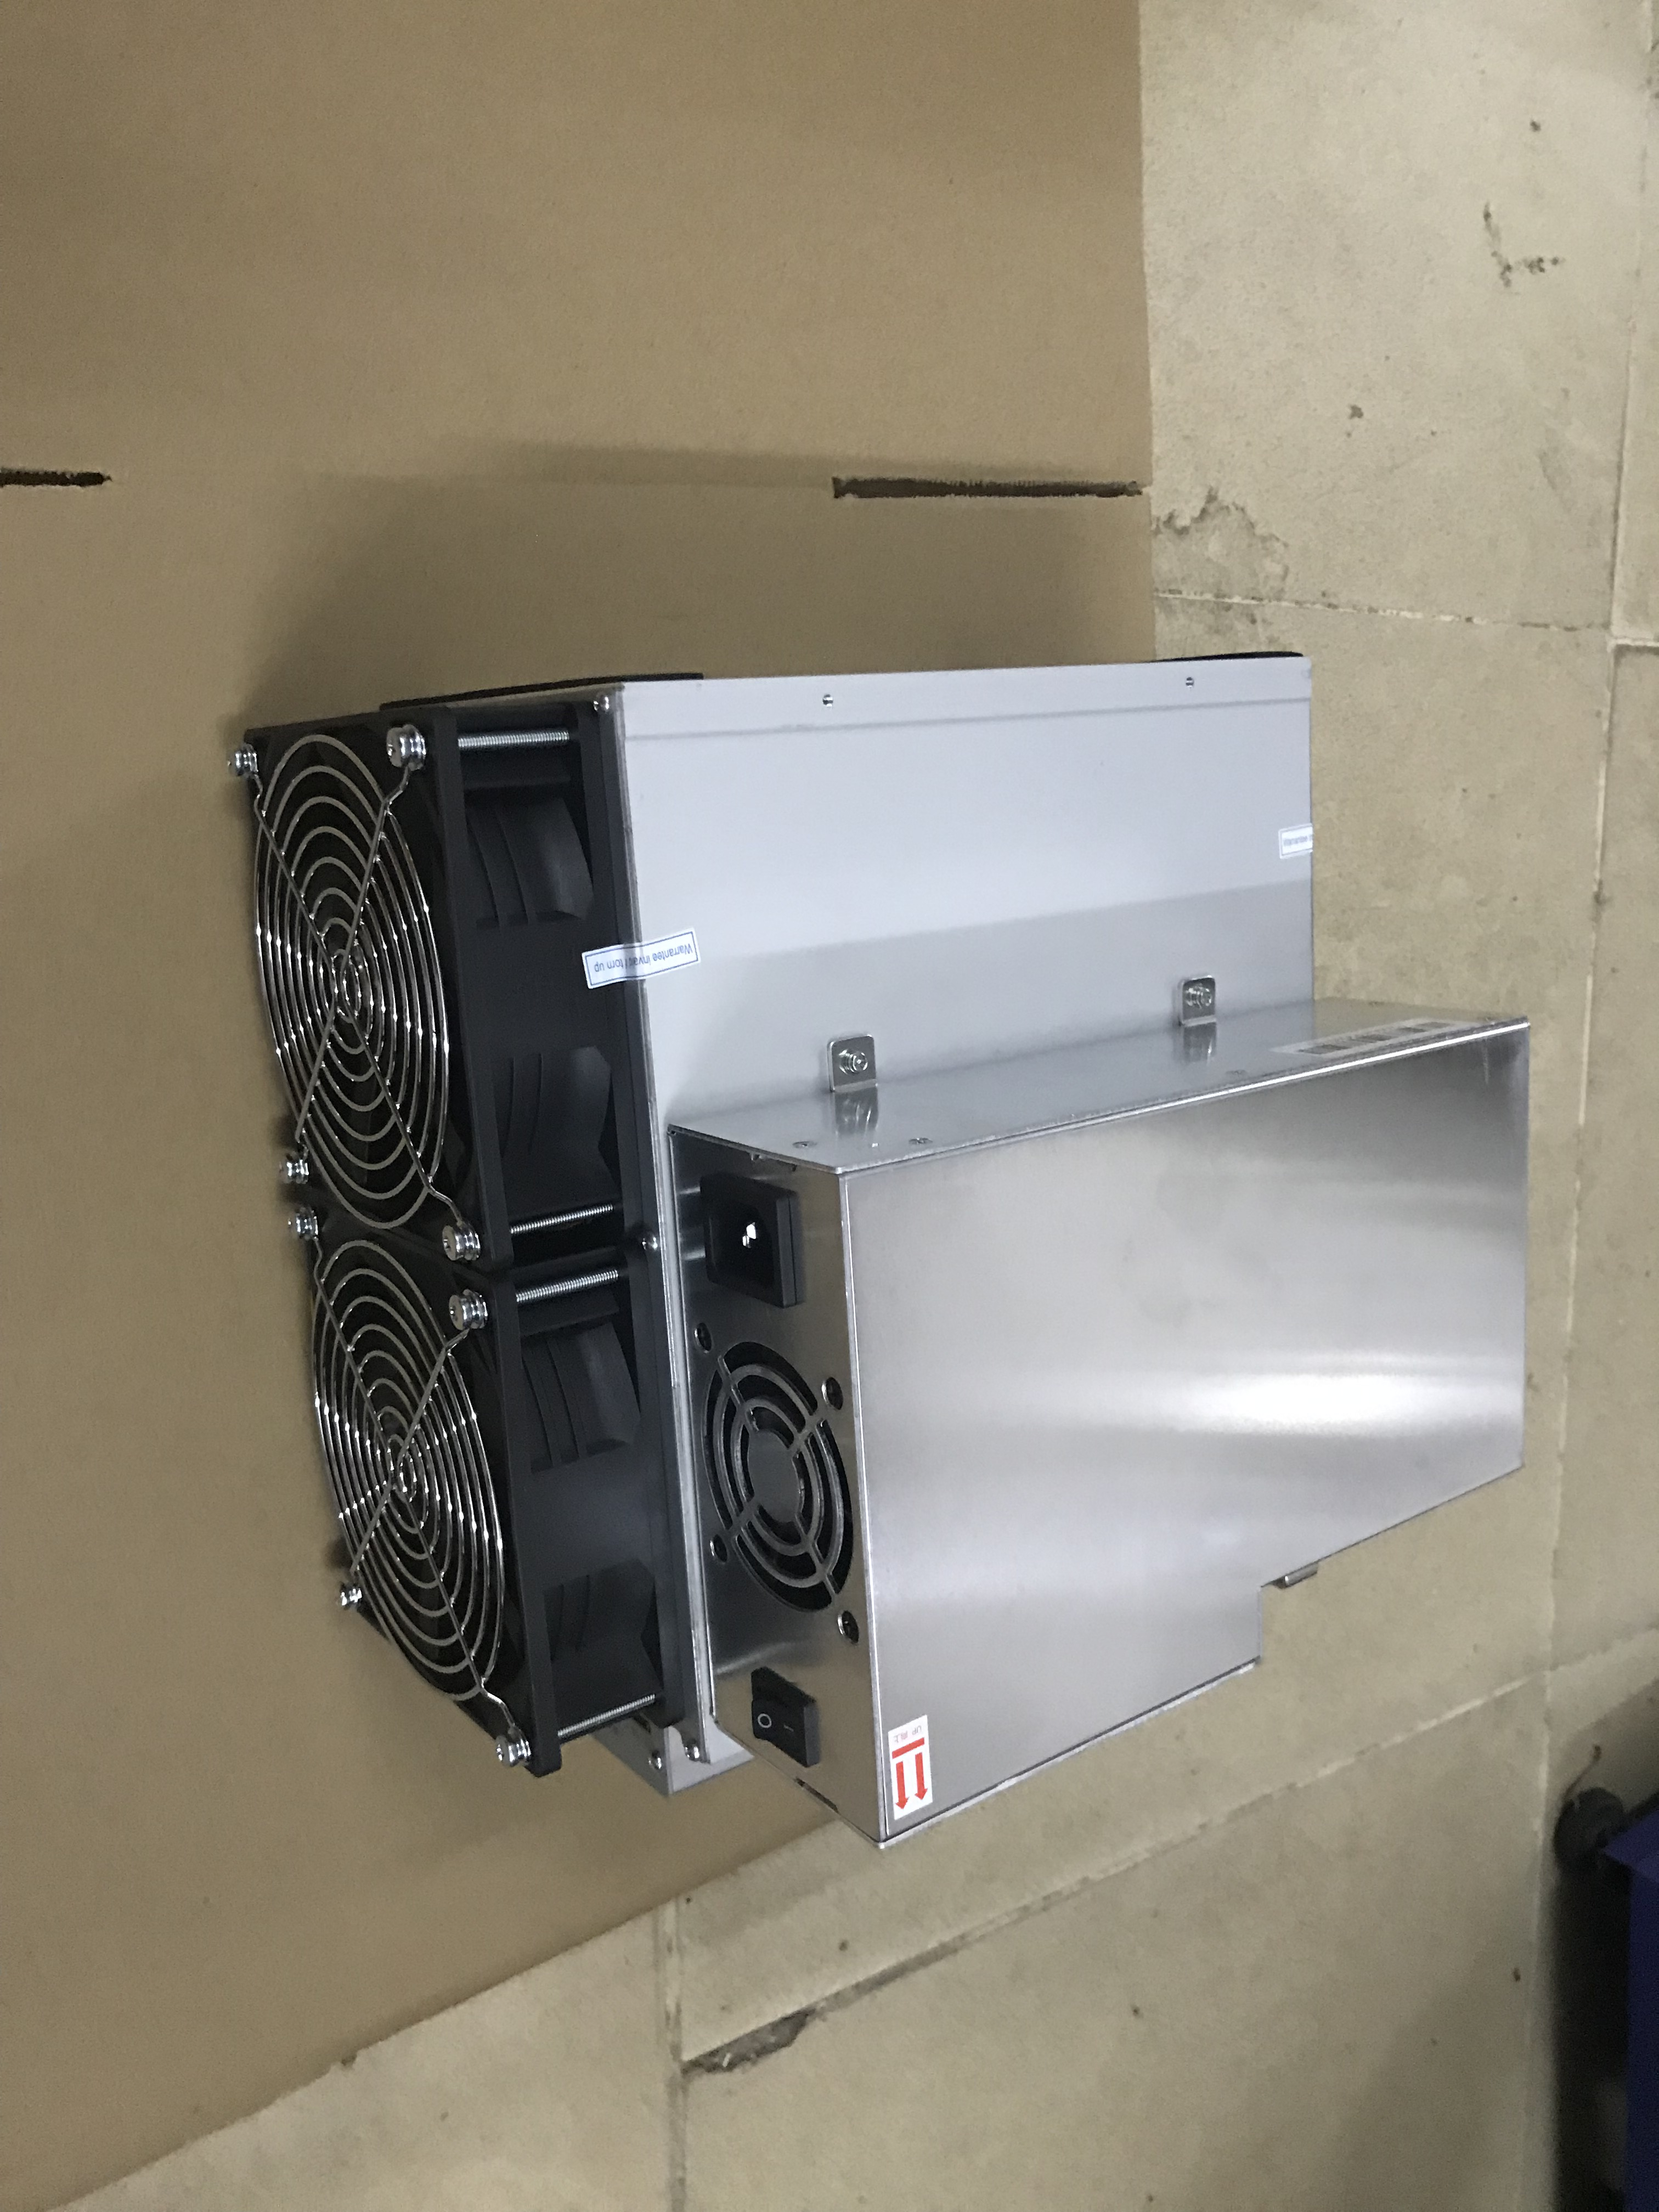 used old BTC Miner INNOSILICON Turbo  T2T  26TH/s Bitcoin Miner SHA256 With PSU Better Than Antminer S9 S11 S15 S17 T9+ T15 T1 6